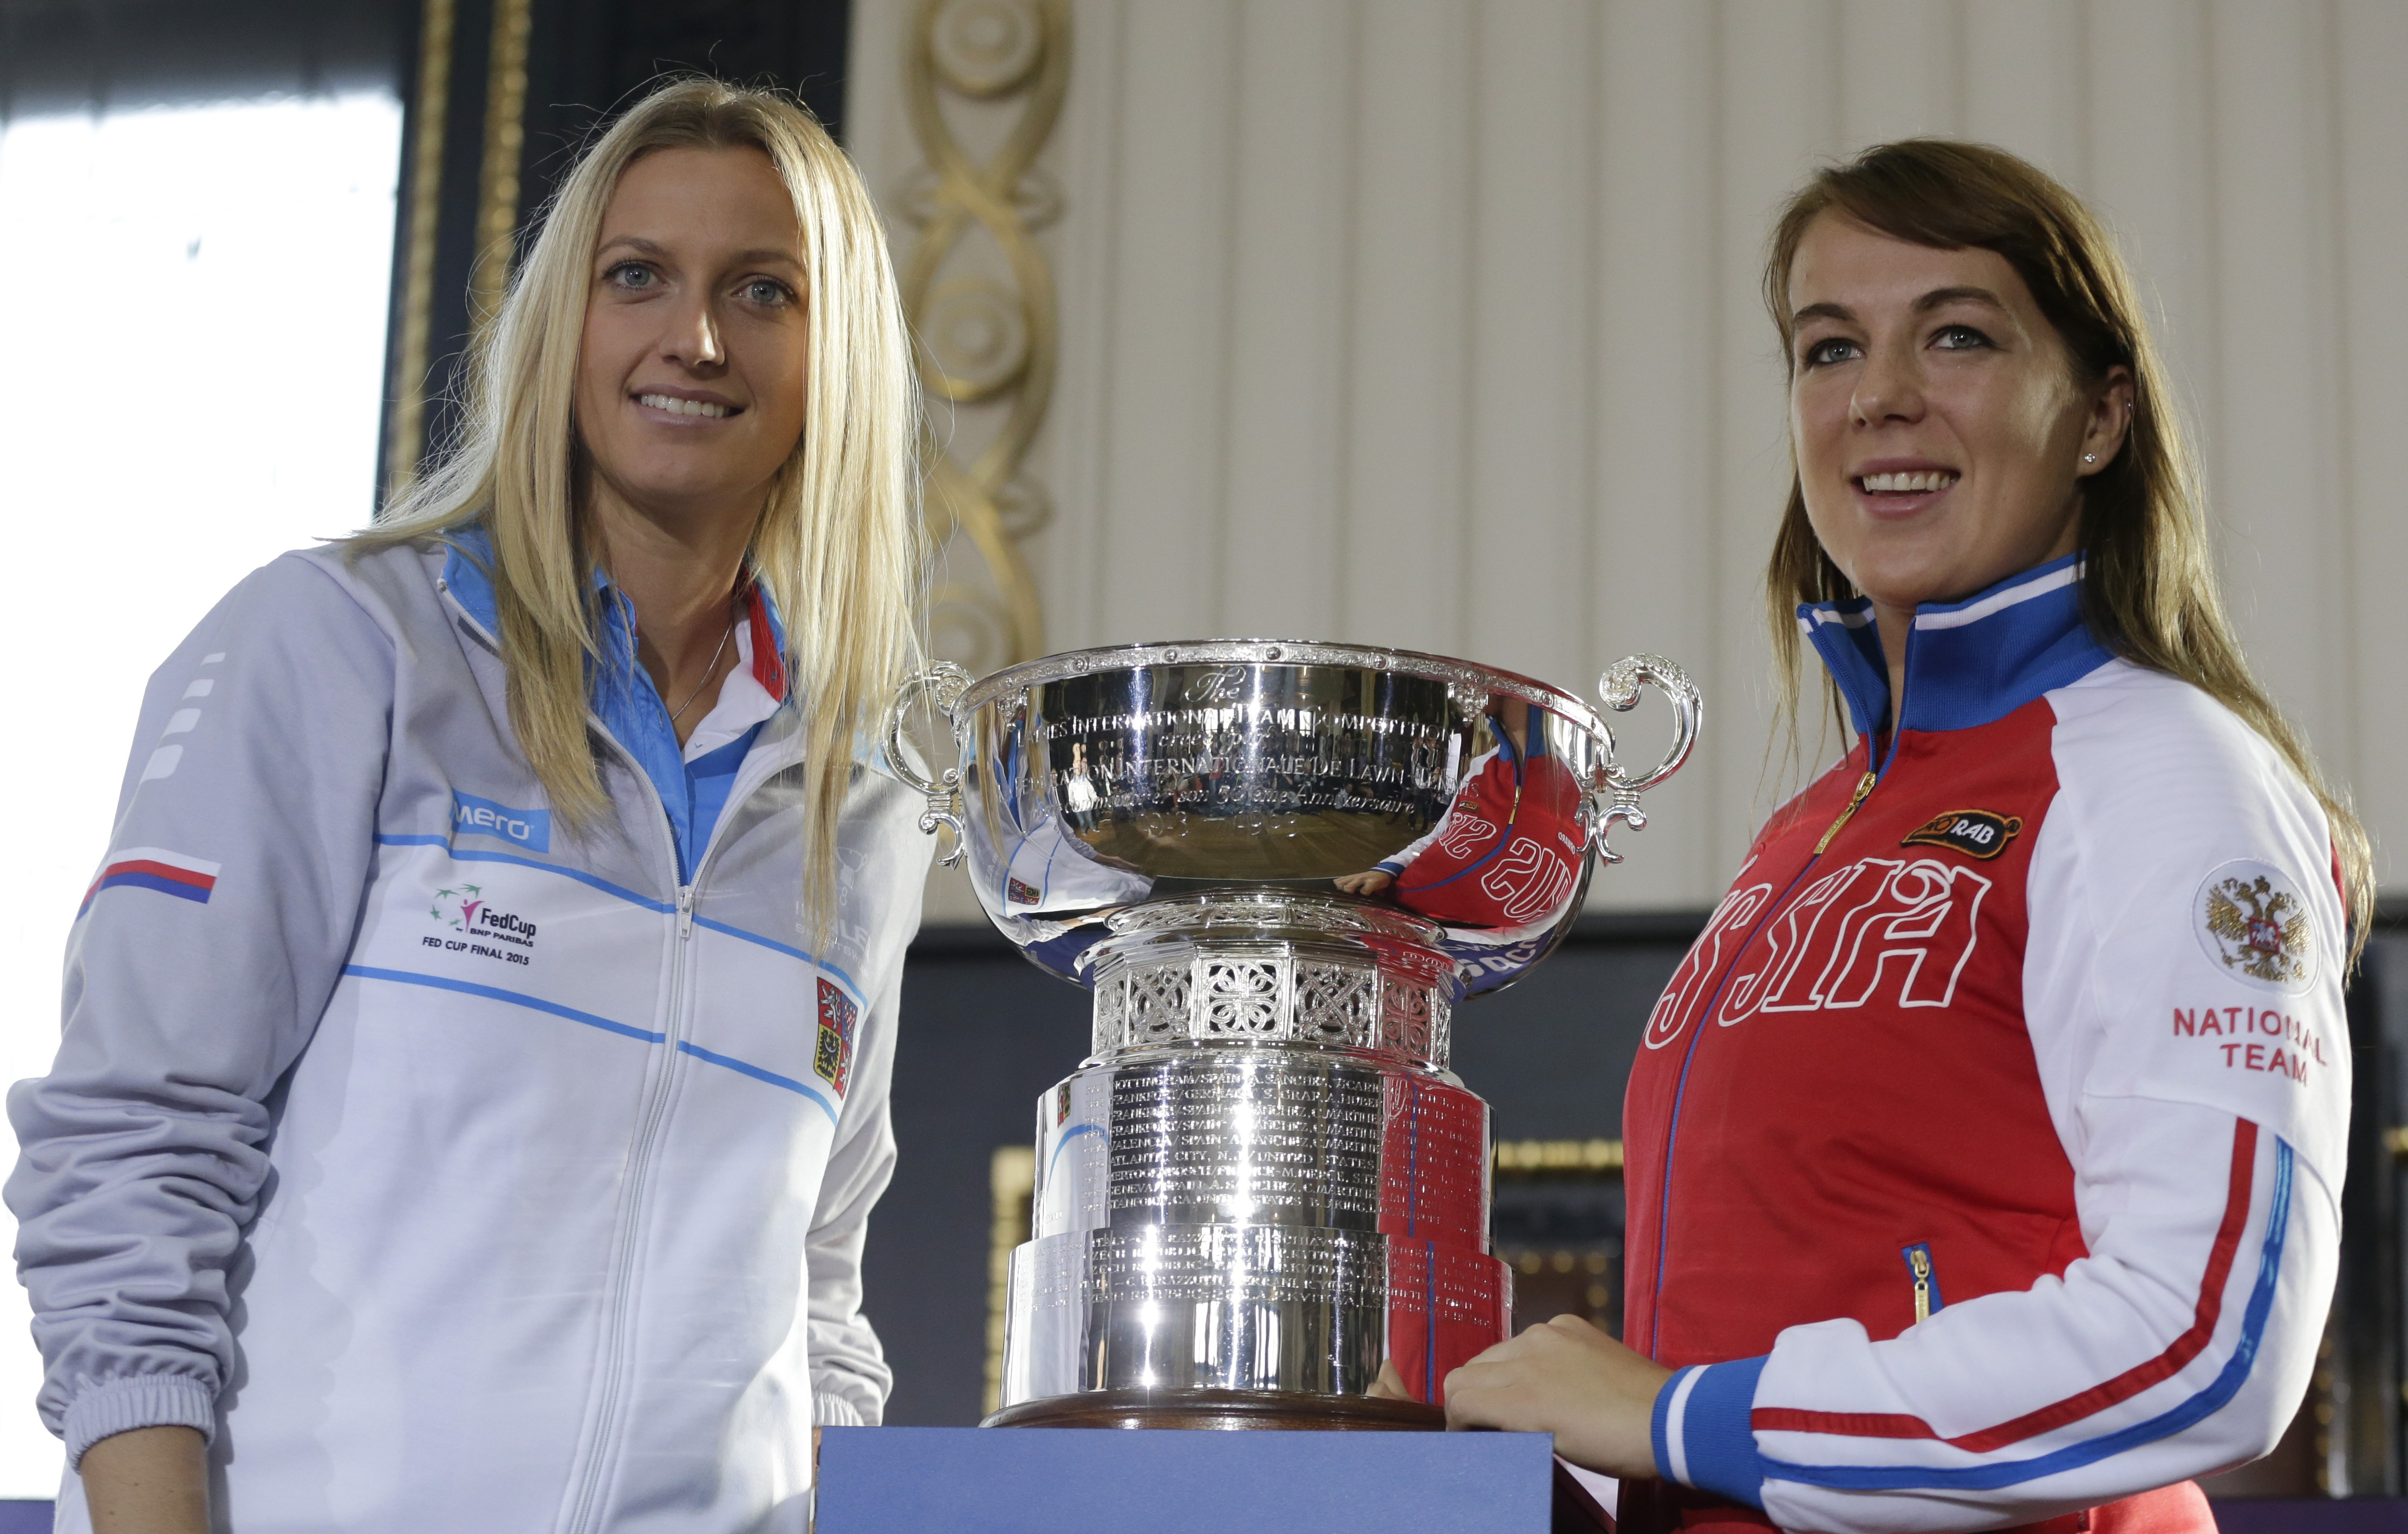 Petra Kvitova, left, of the Czech Republic and Anastasia Pavlyuchenkova, right, of Russia pose for a photo after the draw for the tennis Fed Cup Final between Czech Republic and Russia in Prague, Czech Republic, Friday, Nov. 13, 2015. (AP Photo/Petr David